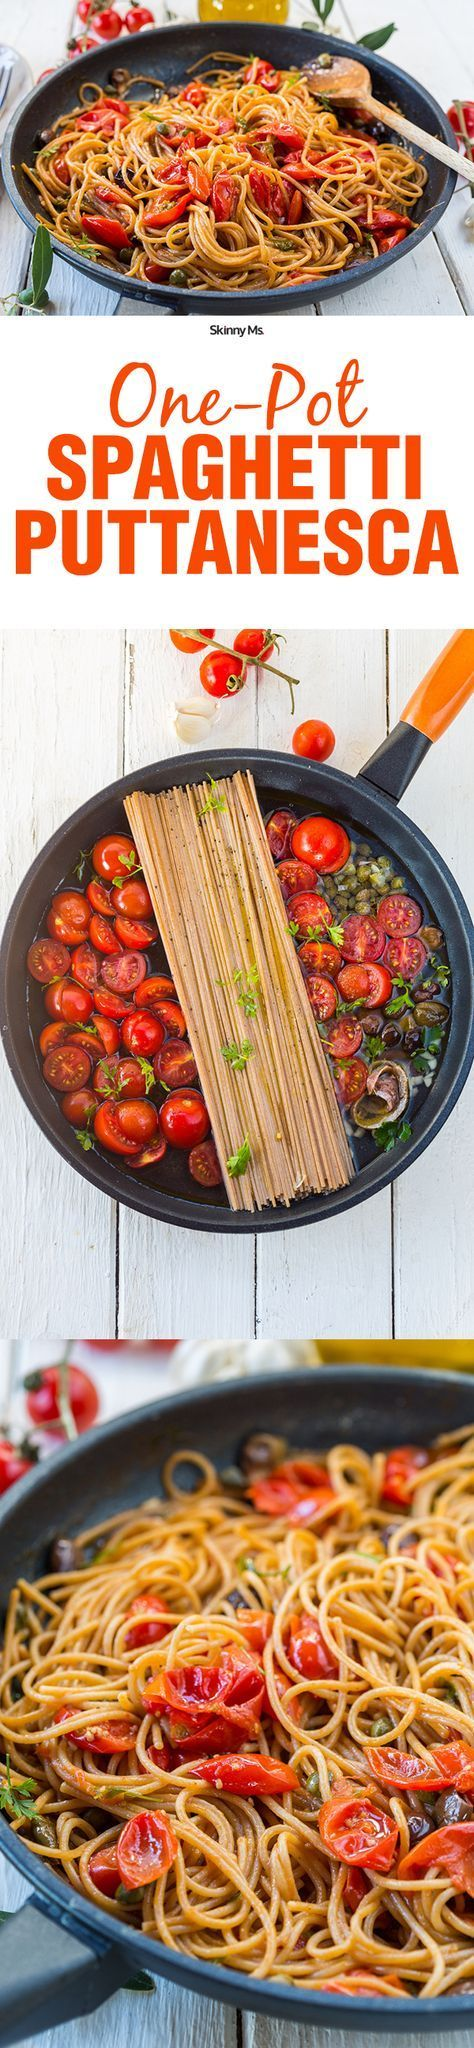 One Pot Spaghetti Puttanesca! Sure to become a great family favorite. #SkinnyMs